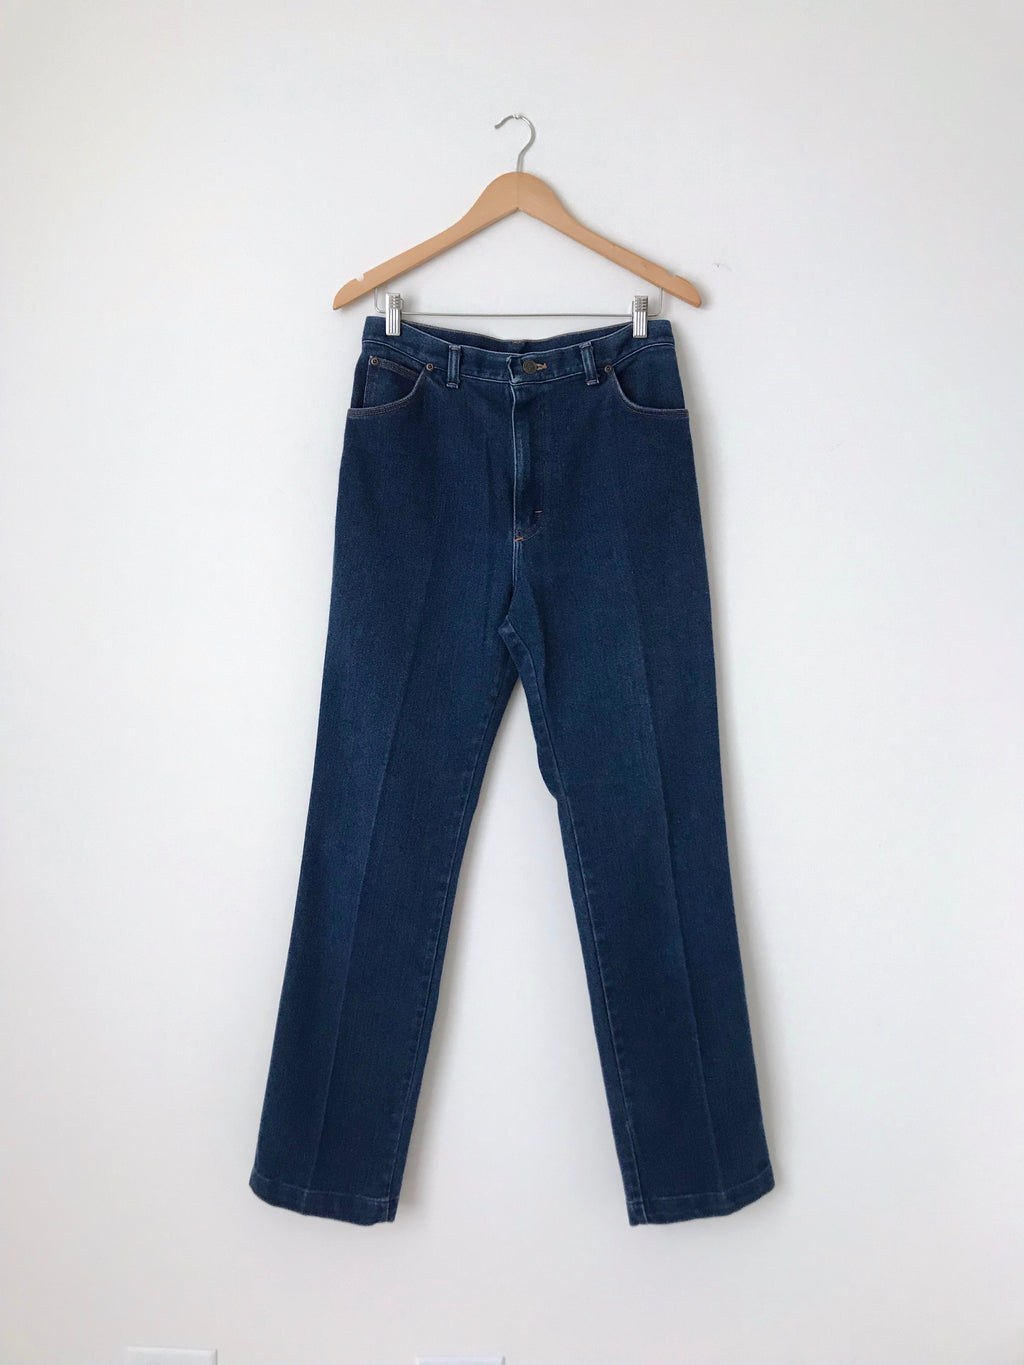 Women's Vintage 80s Dark Denim Western Jeans by Sheplers | 30.5 Inch Waist | Canary Club Vintage